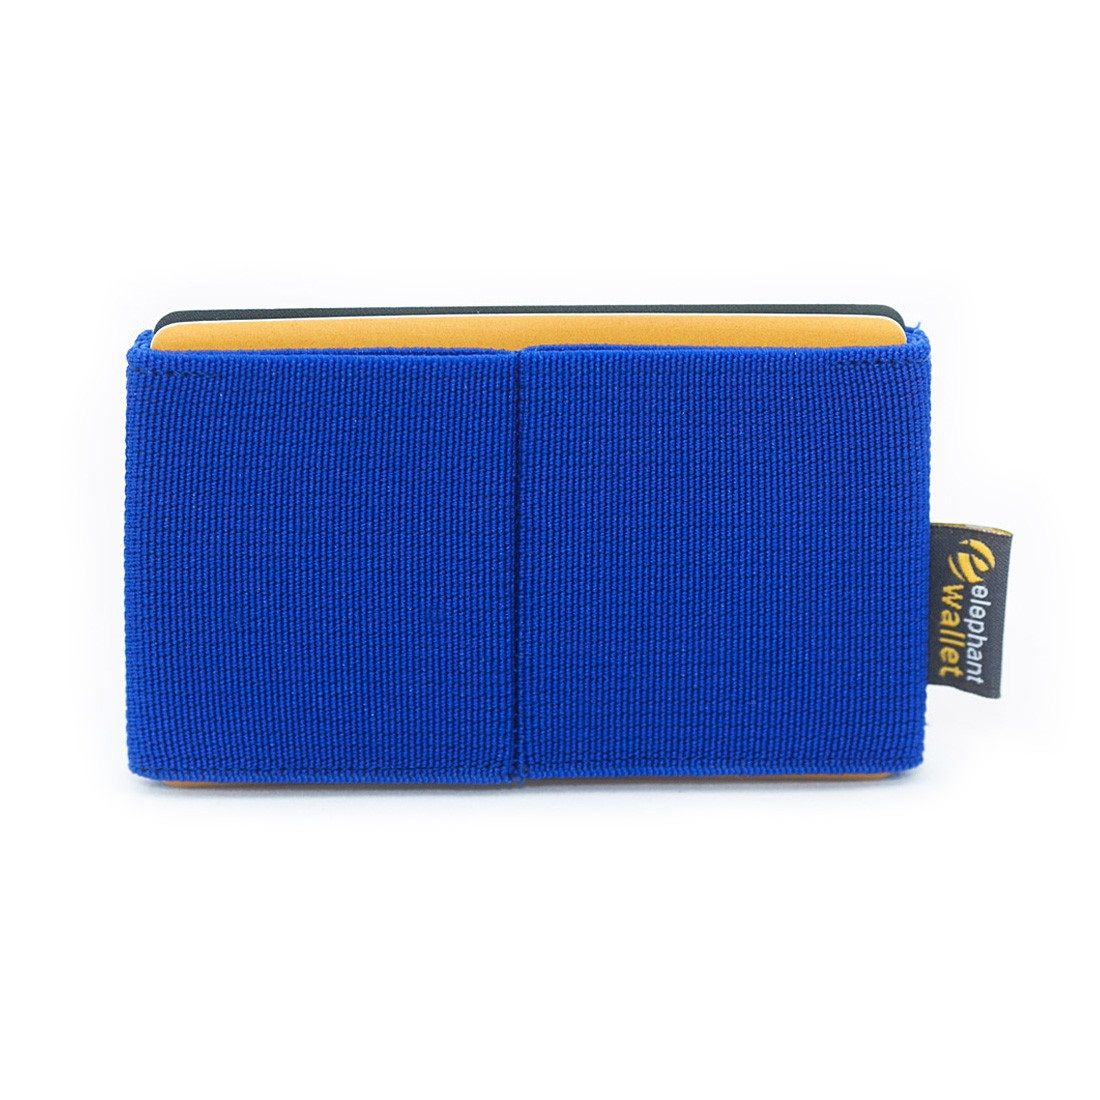 Minimalist Rubber Wallet - Blue